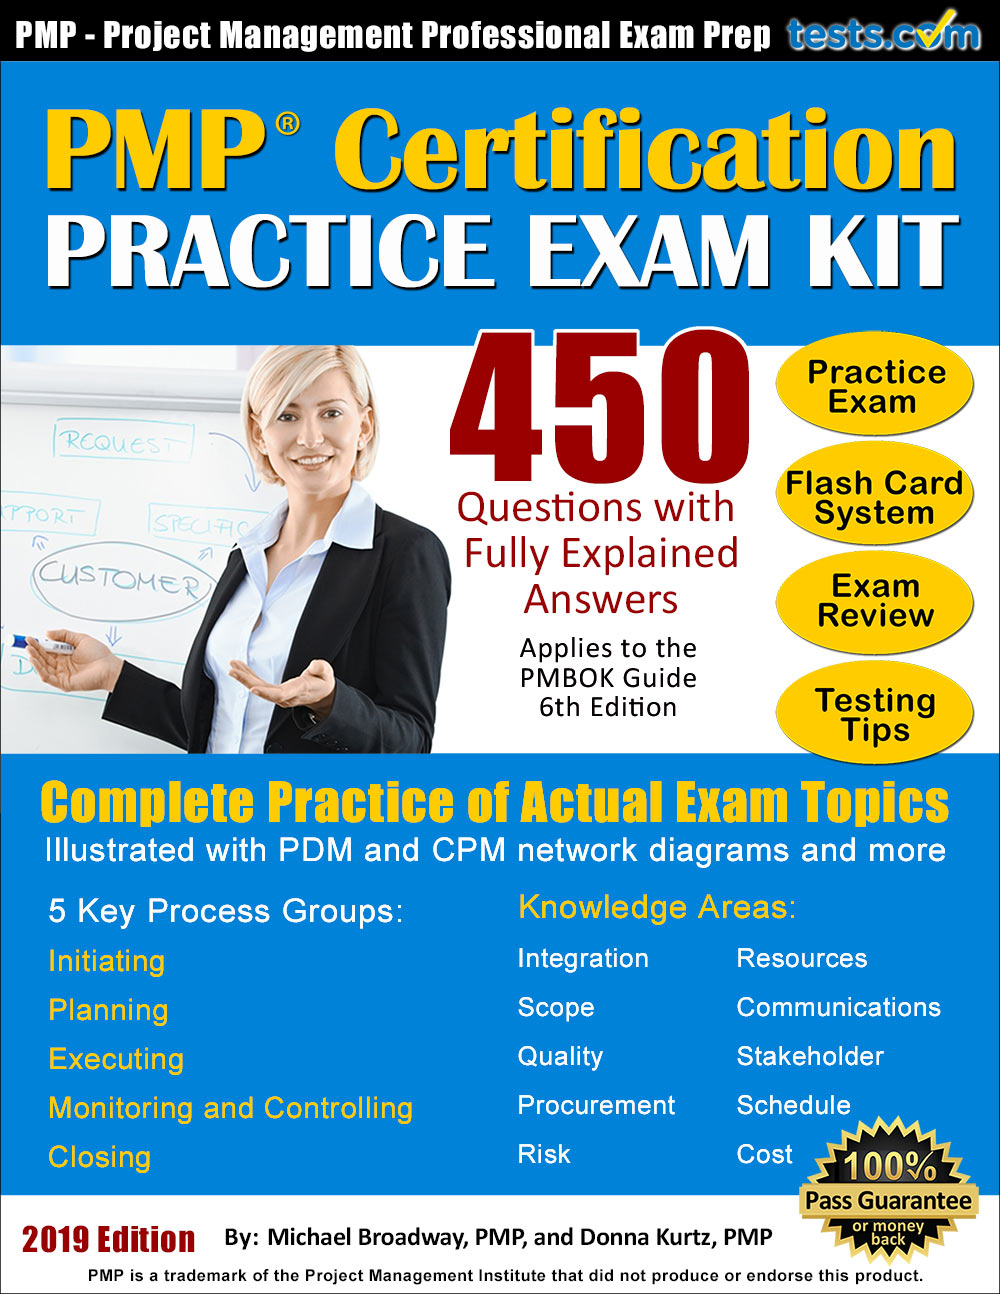 Pmp practice exam kit pmp certification practice exam kit xflitez Image collections